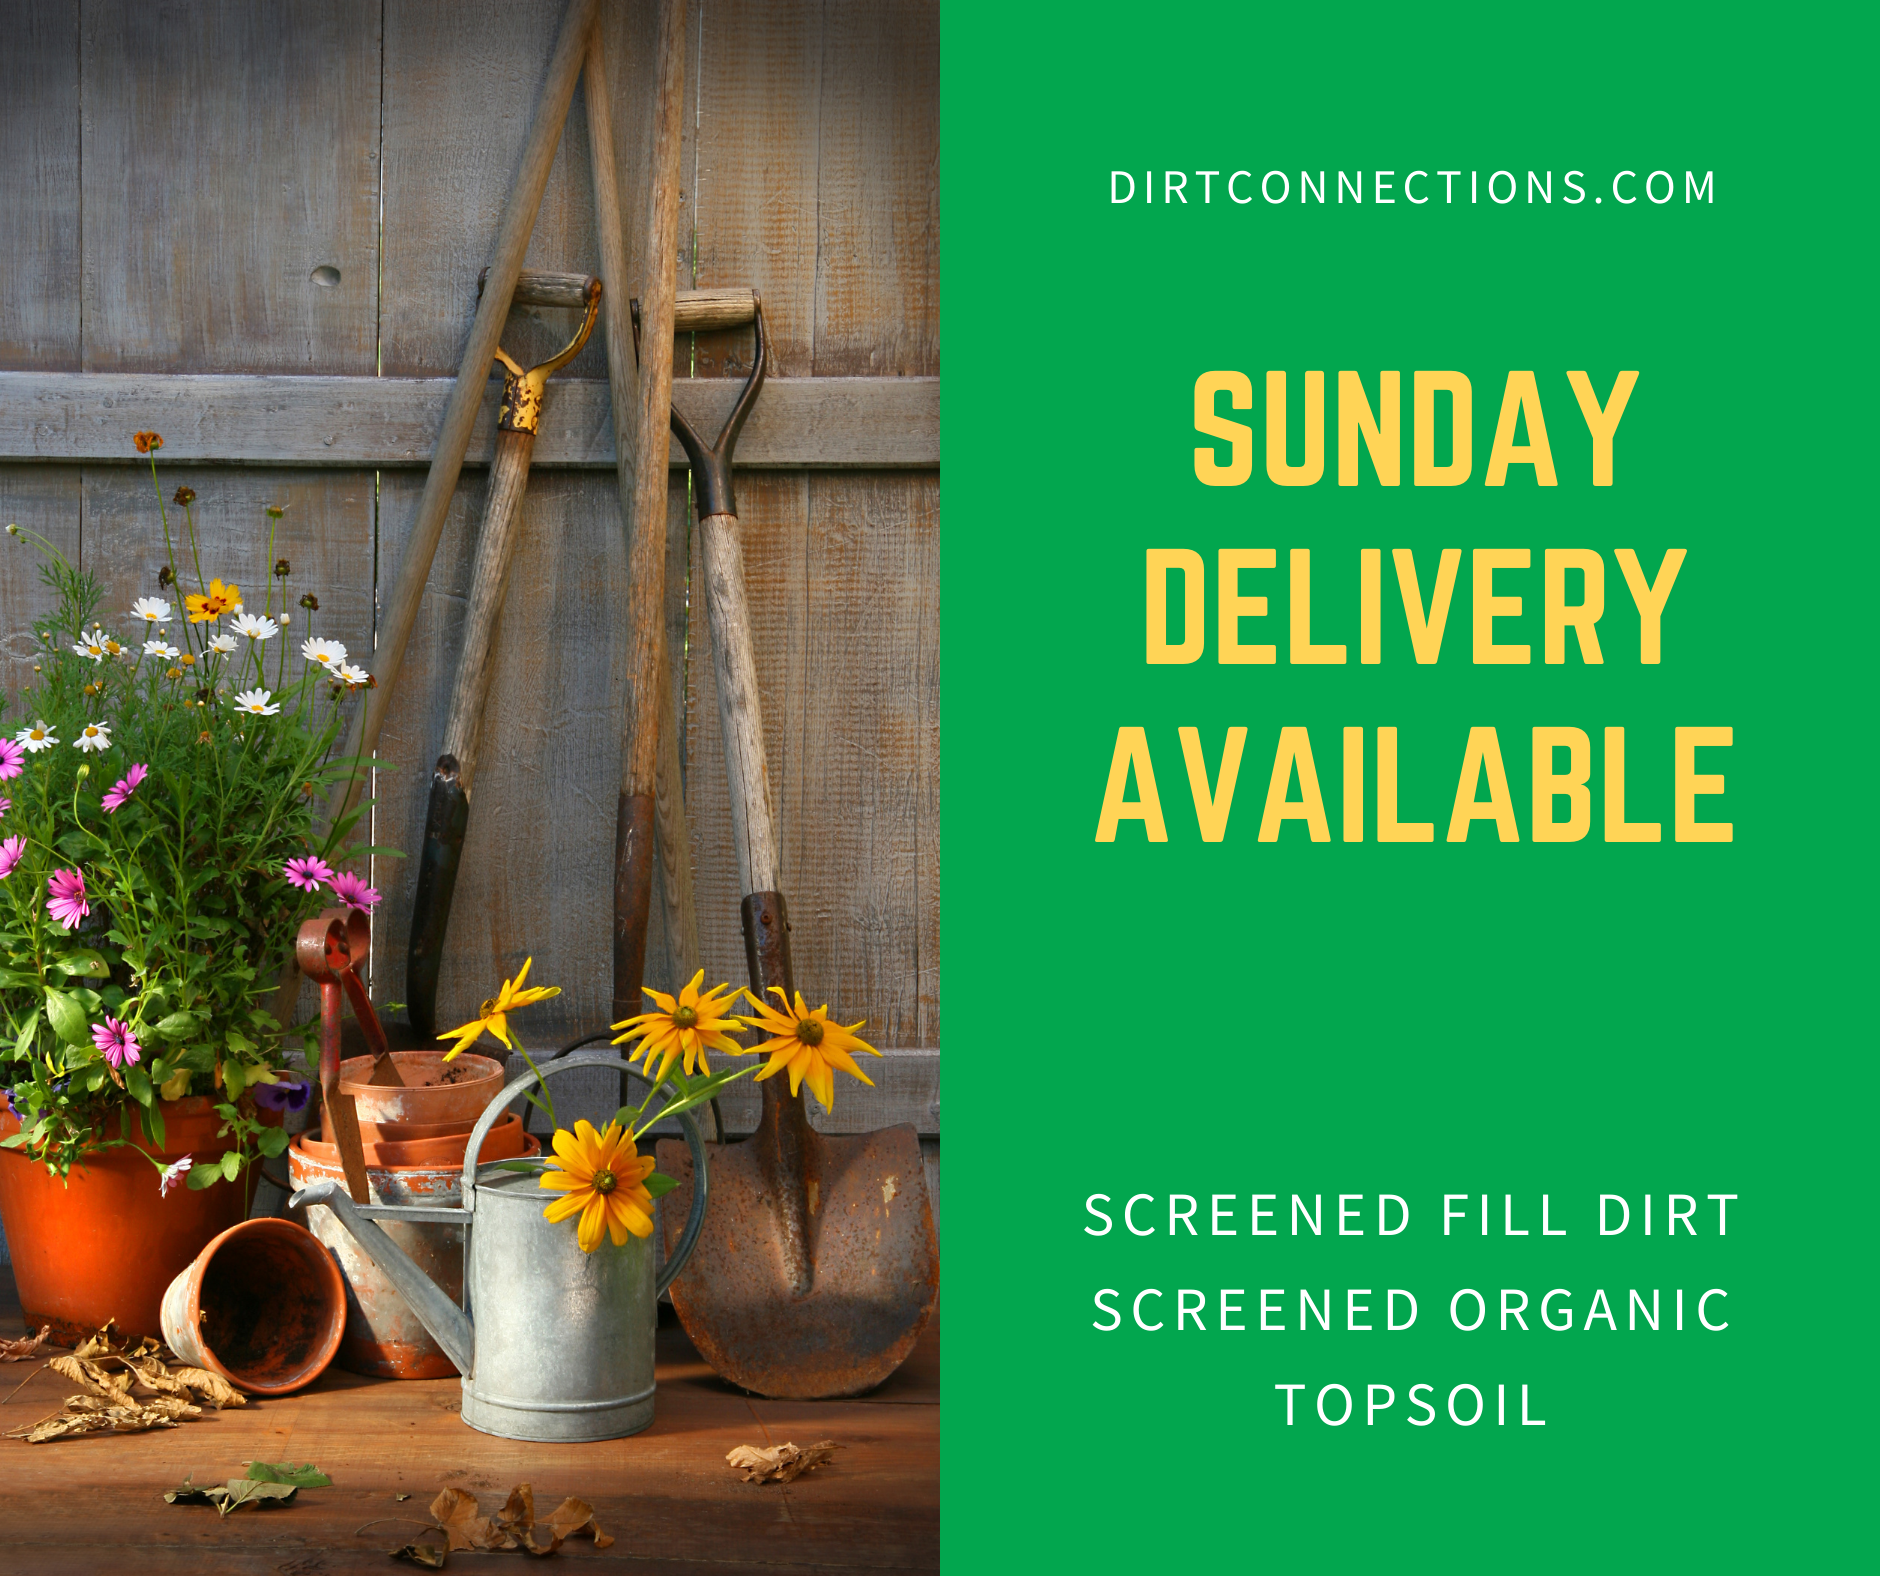 Sunday deliveries available now